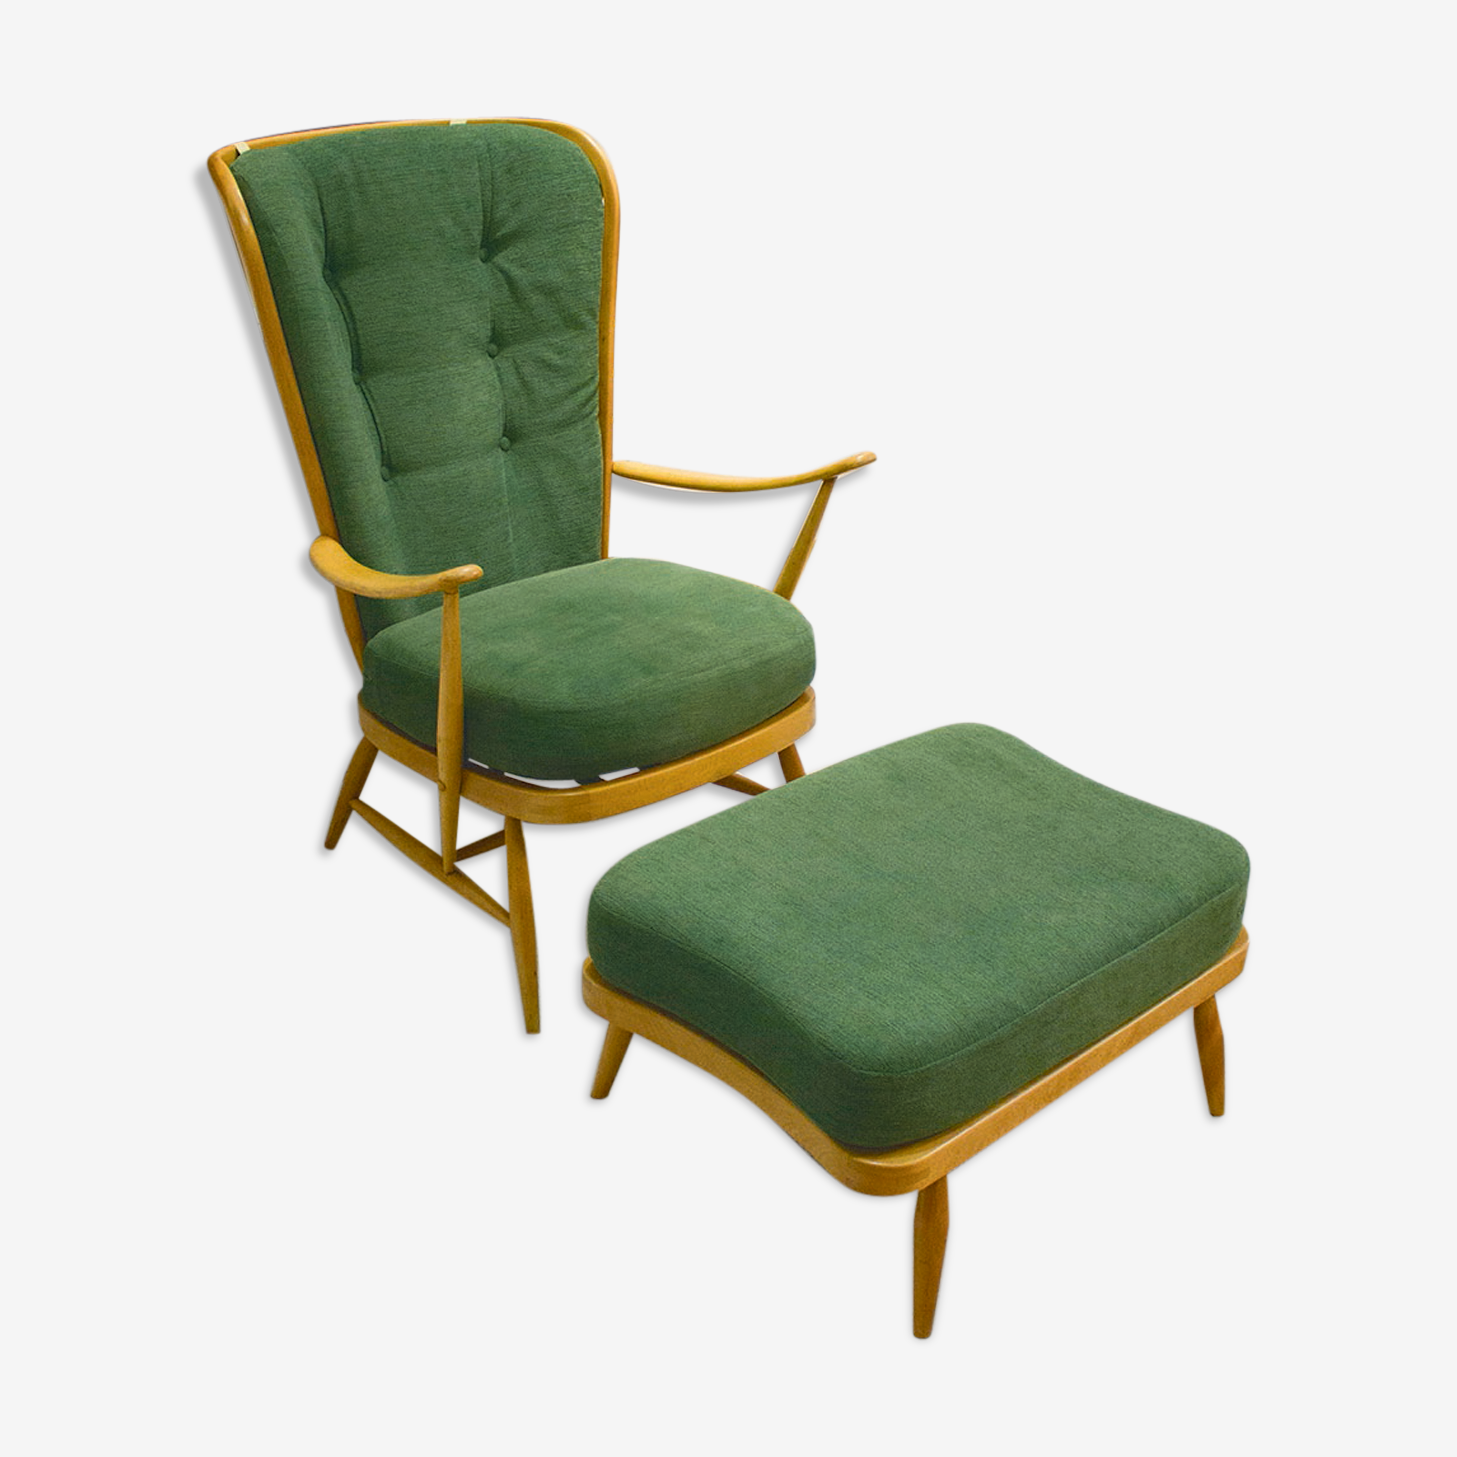 Armchair with ottoman Windsor 478 Lucian Ercolani for Ercol 1950